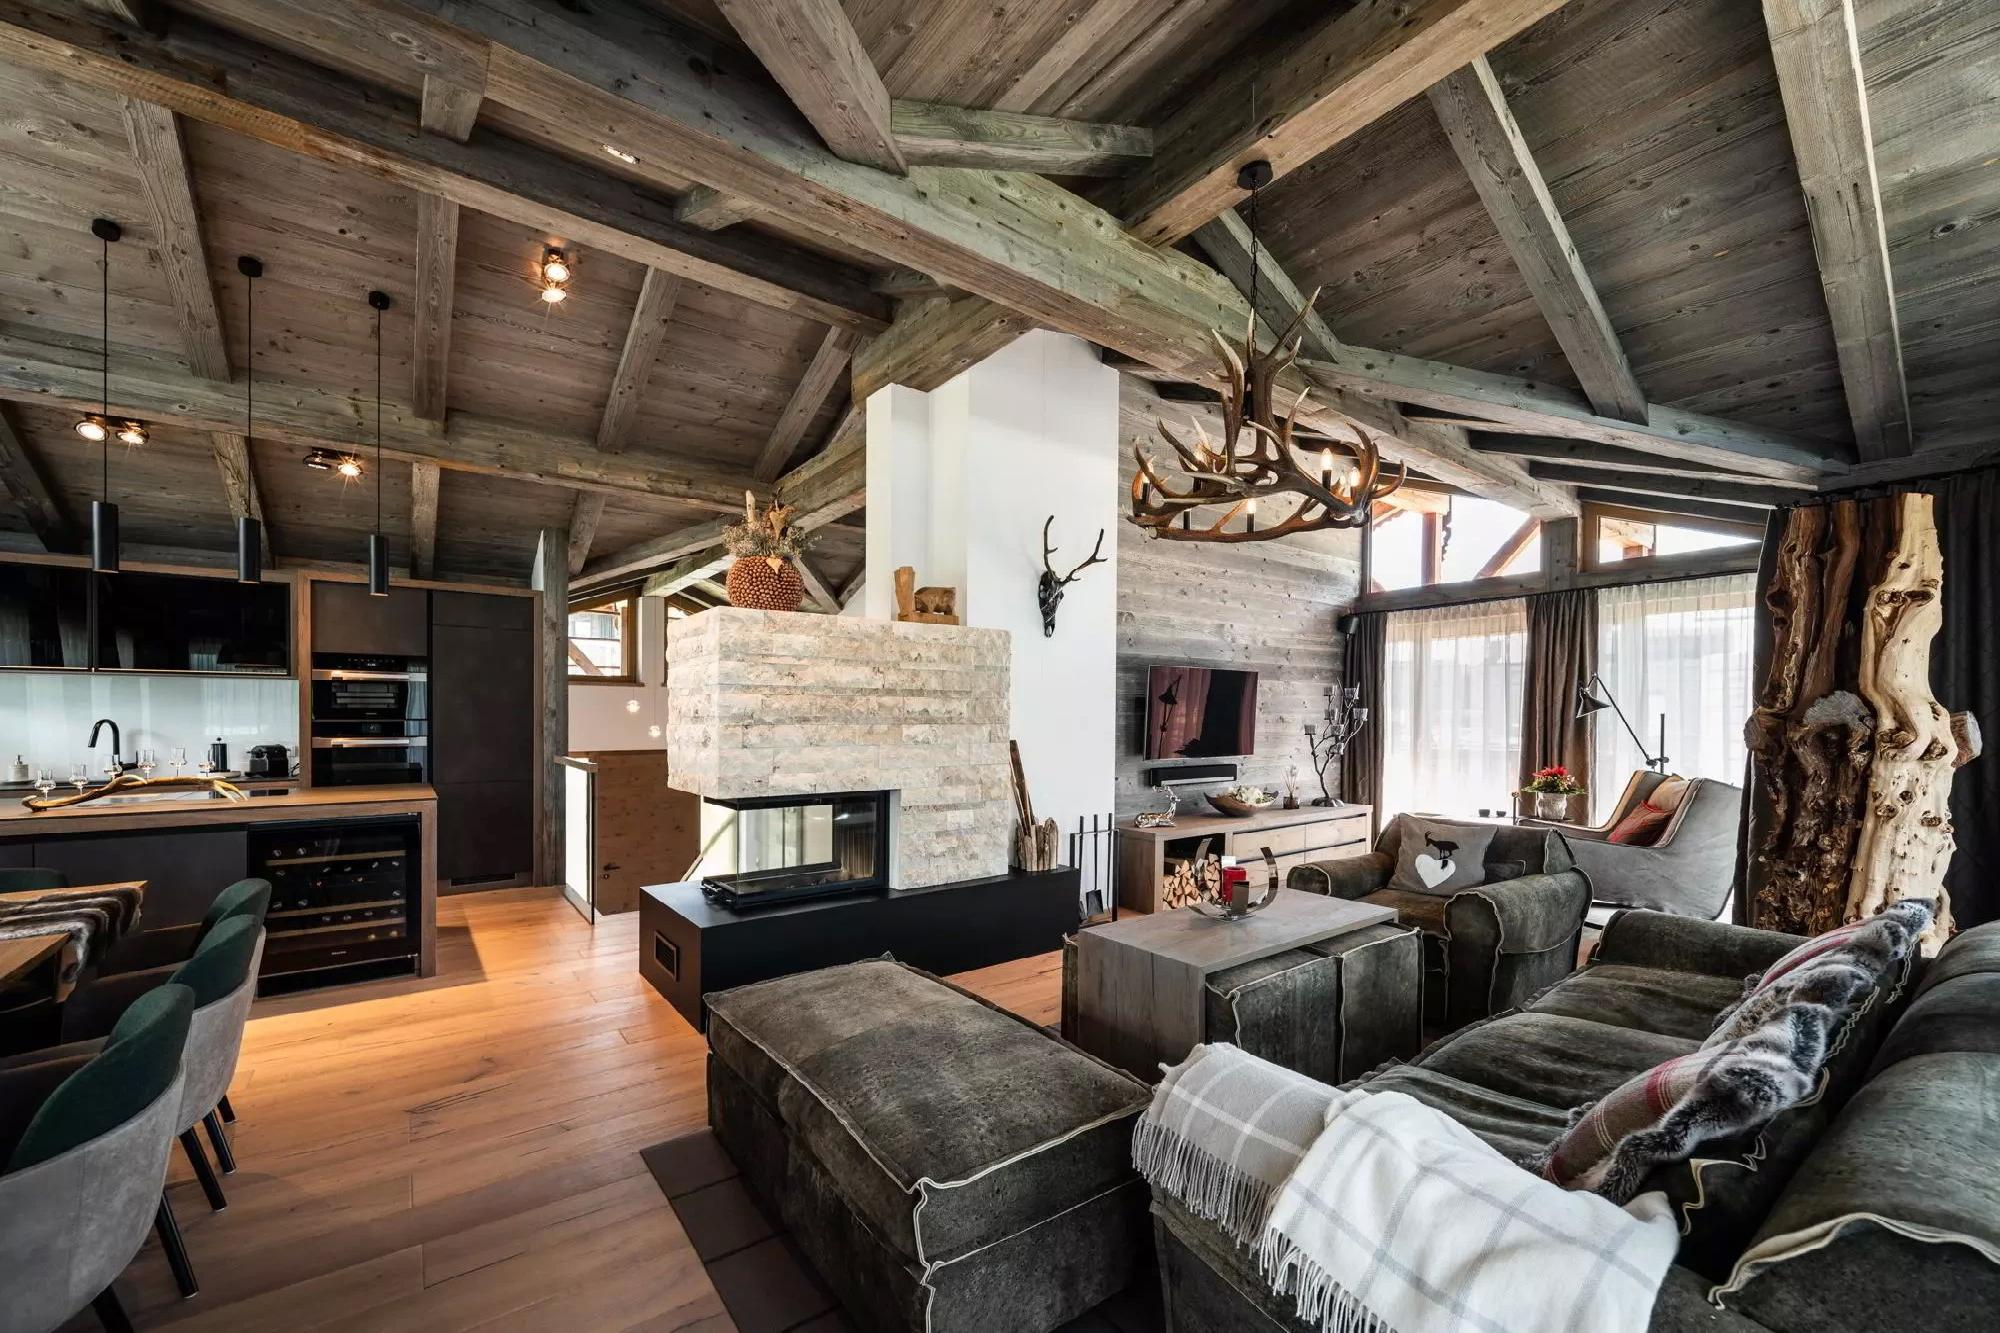 Luxury Chalets in Austria with secondary residence For Sale - Austria - Salzburgland